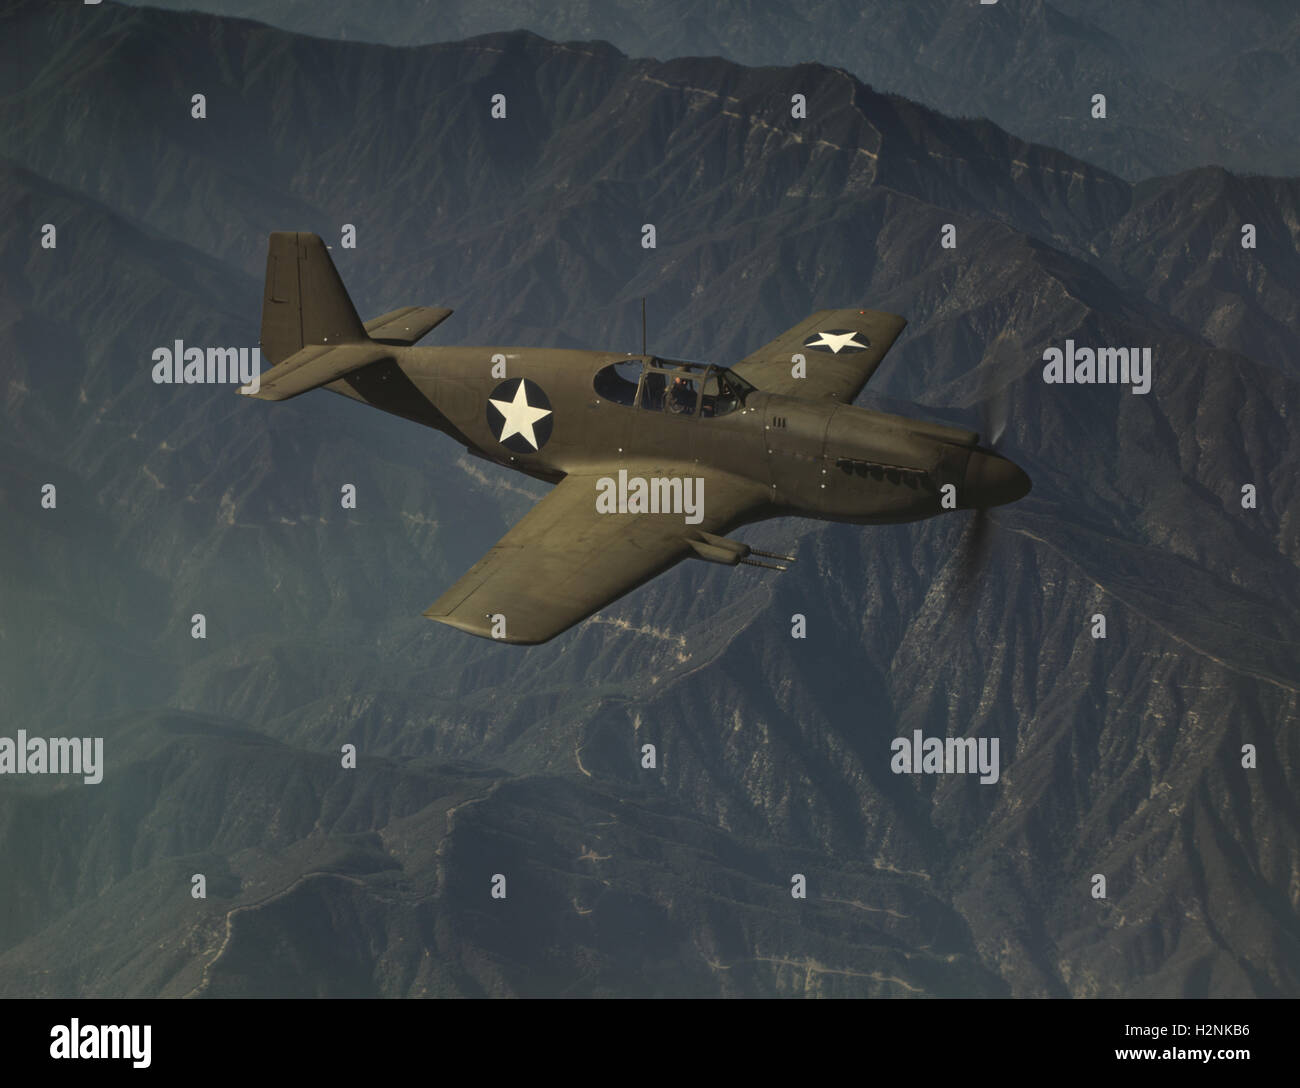 P-51 'Mustang' Fighter Plane  in Flight, USA, Alfred T. Palmer for Office of War Information, October 1942 - Stock Image